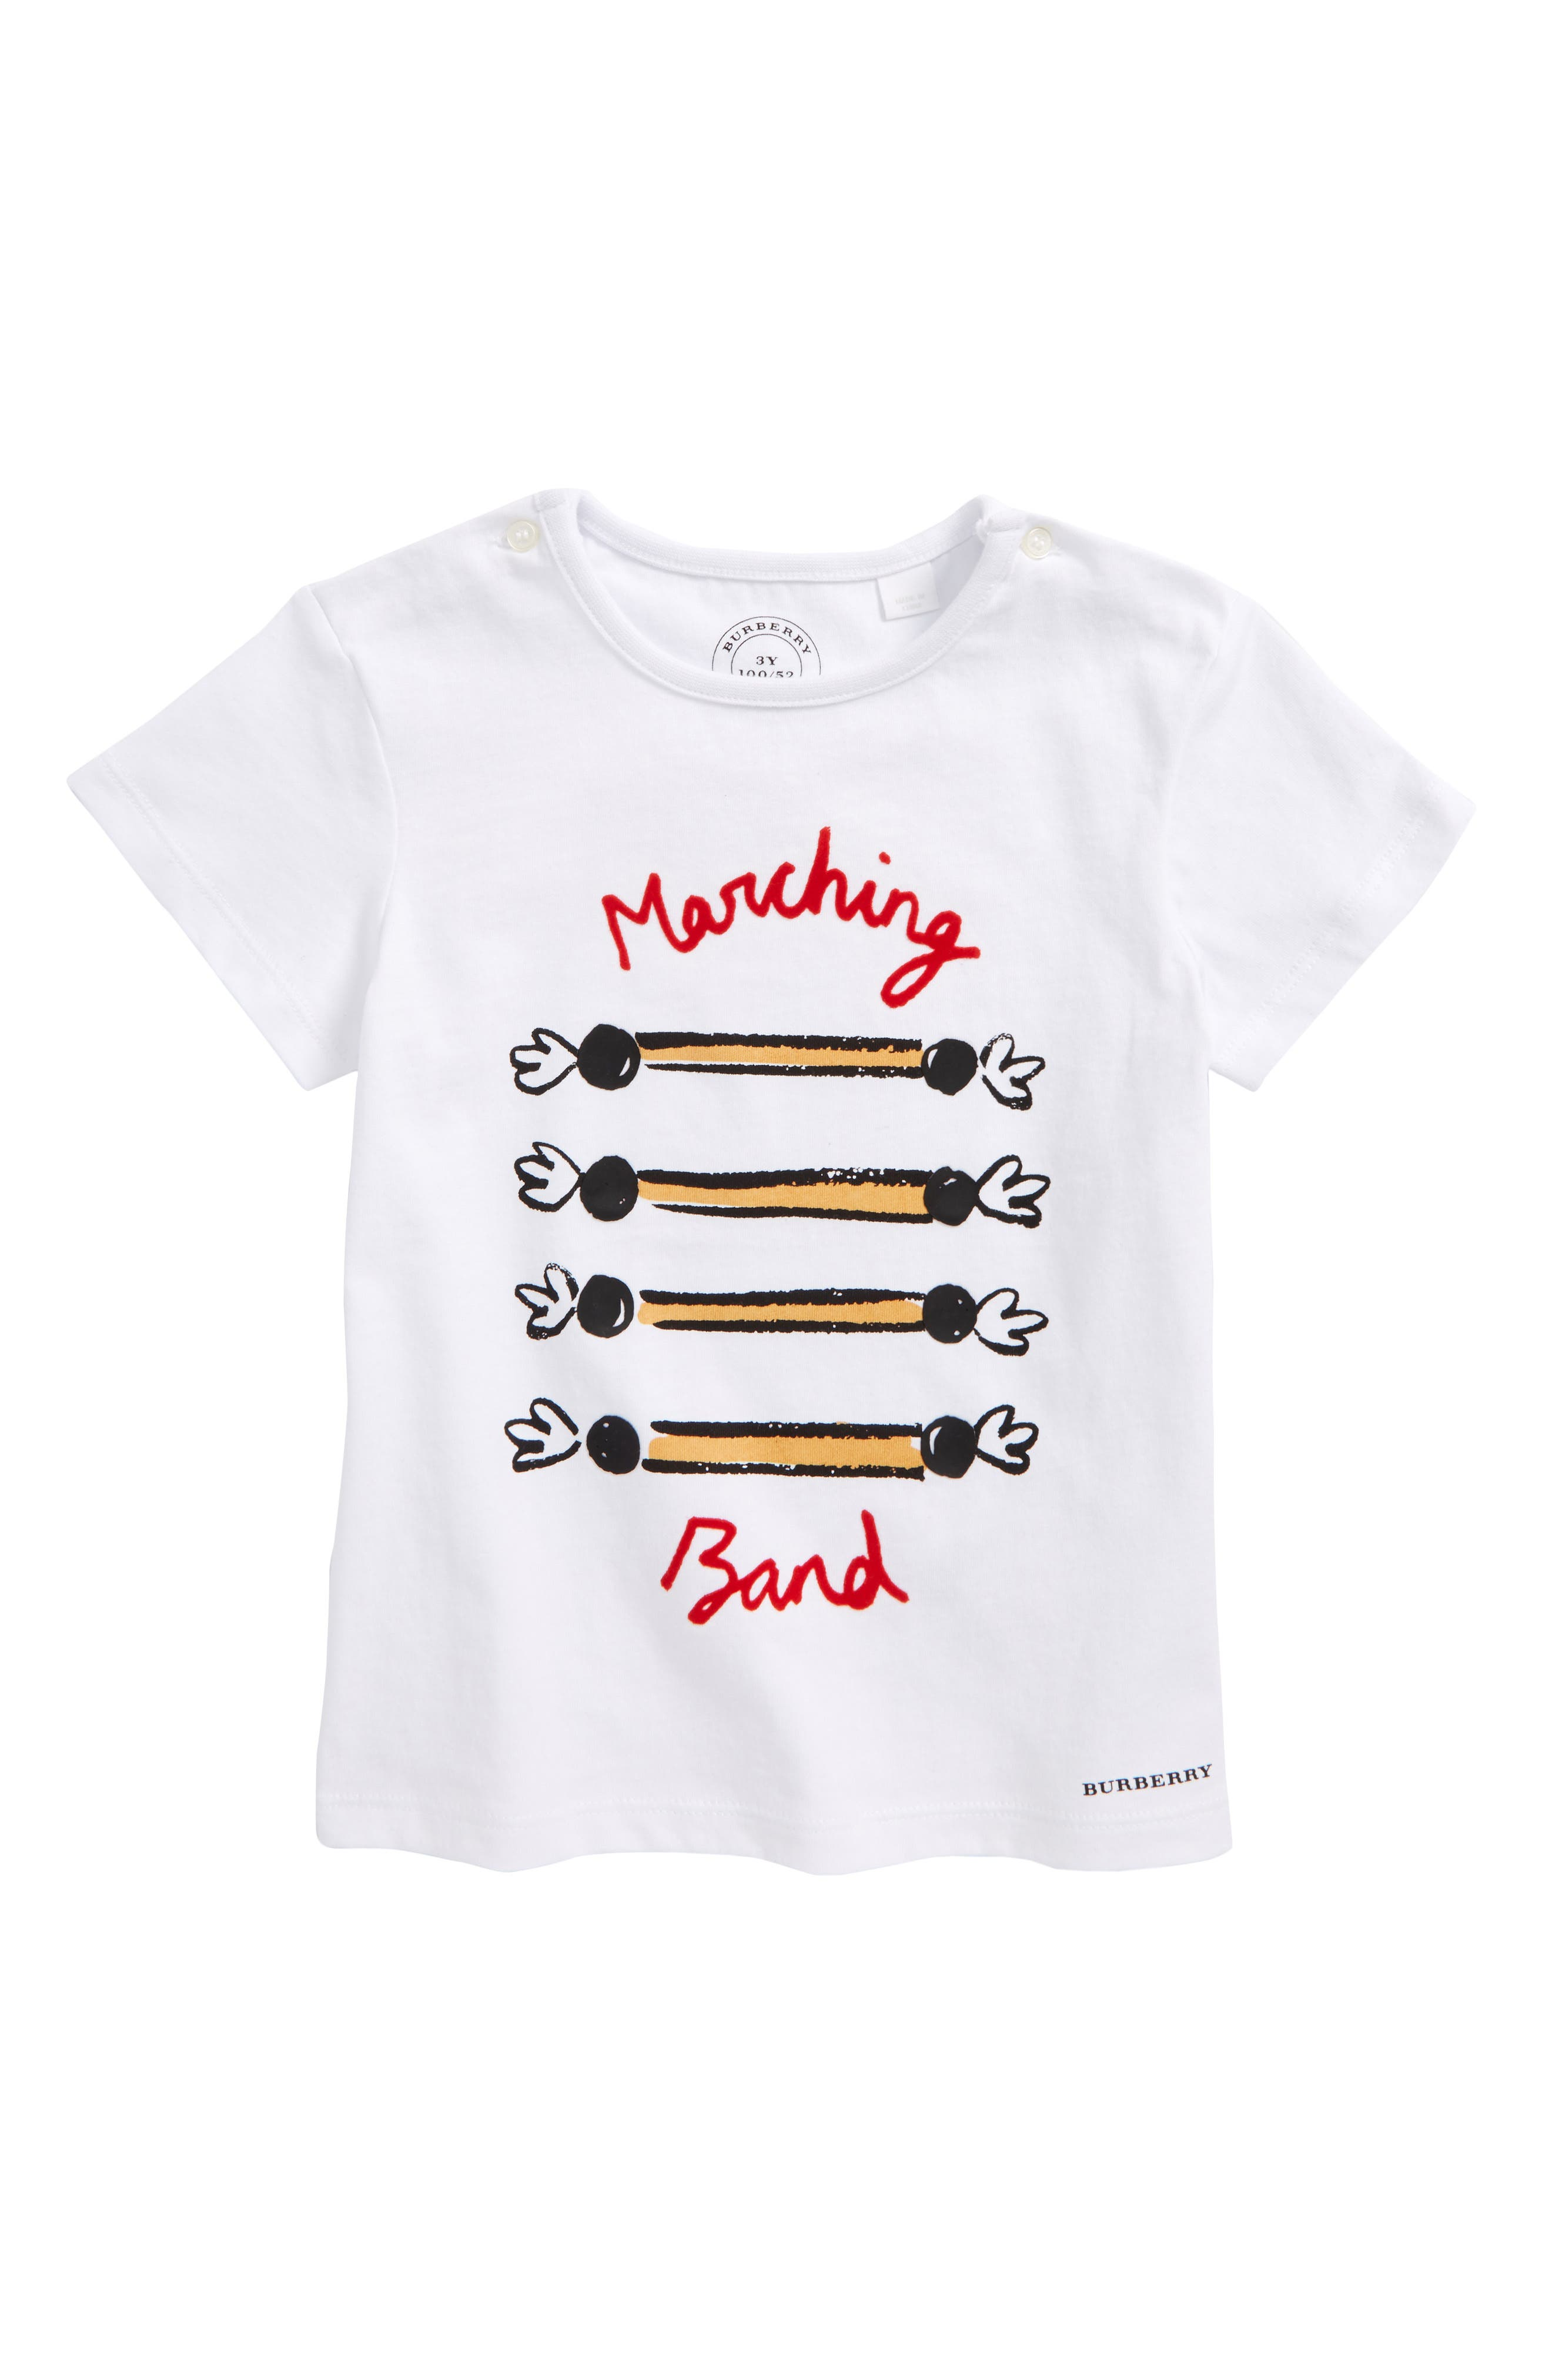 Main Image - Burberry Marching Band Tee (Toddler)